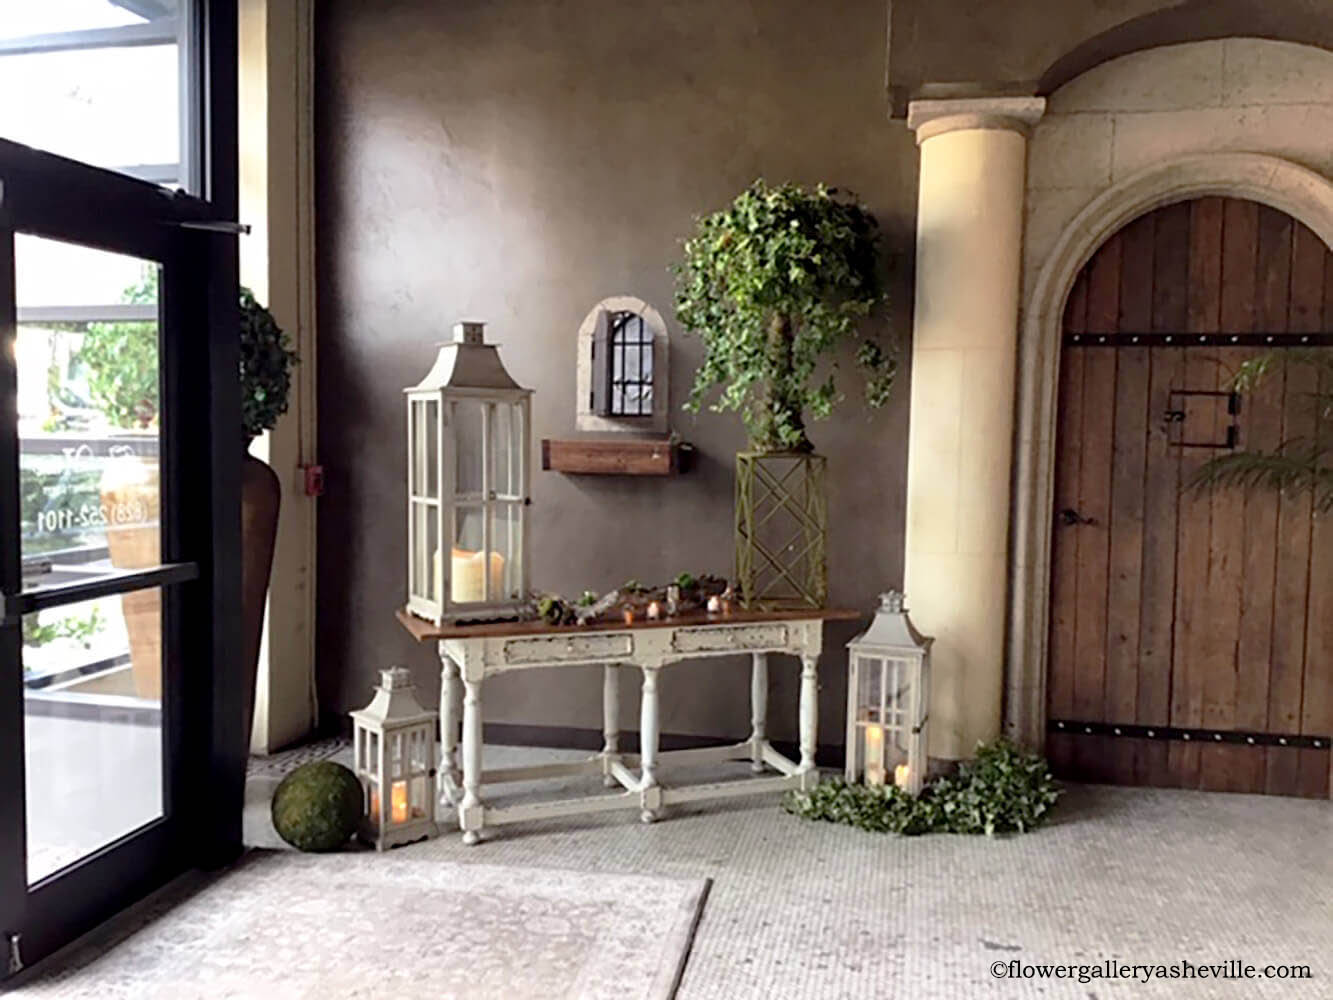 Simple Entryway with Small Ficus Tree and Green Ivy